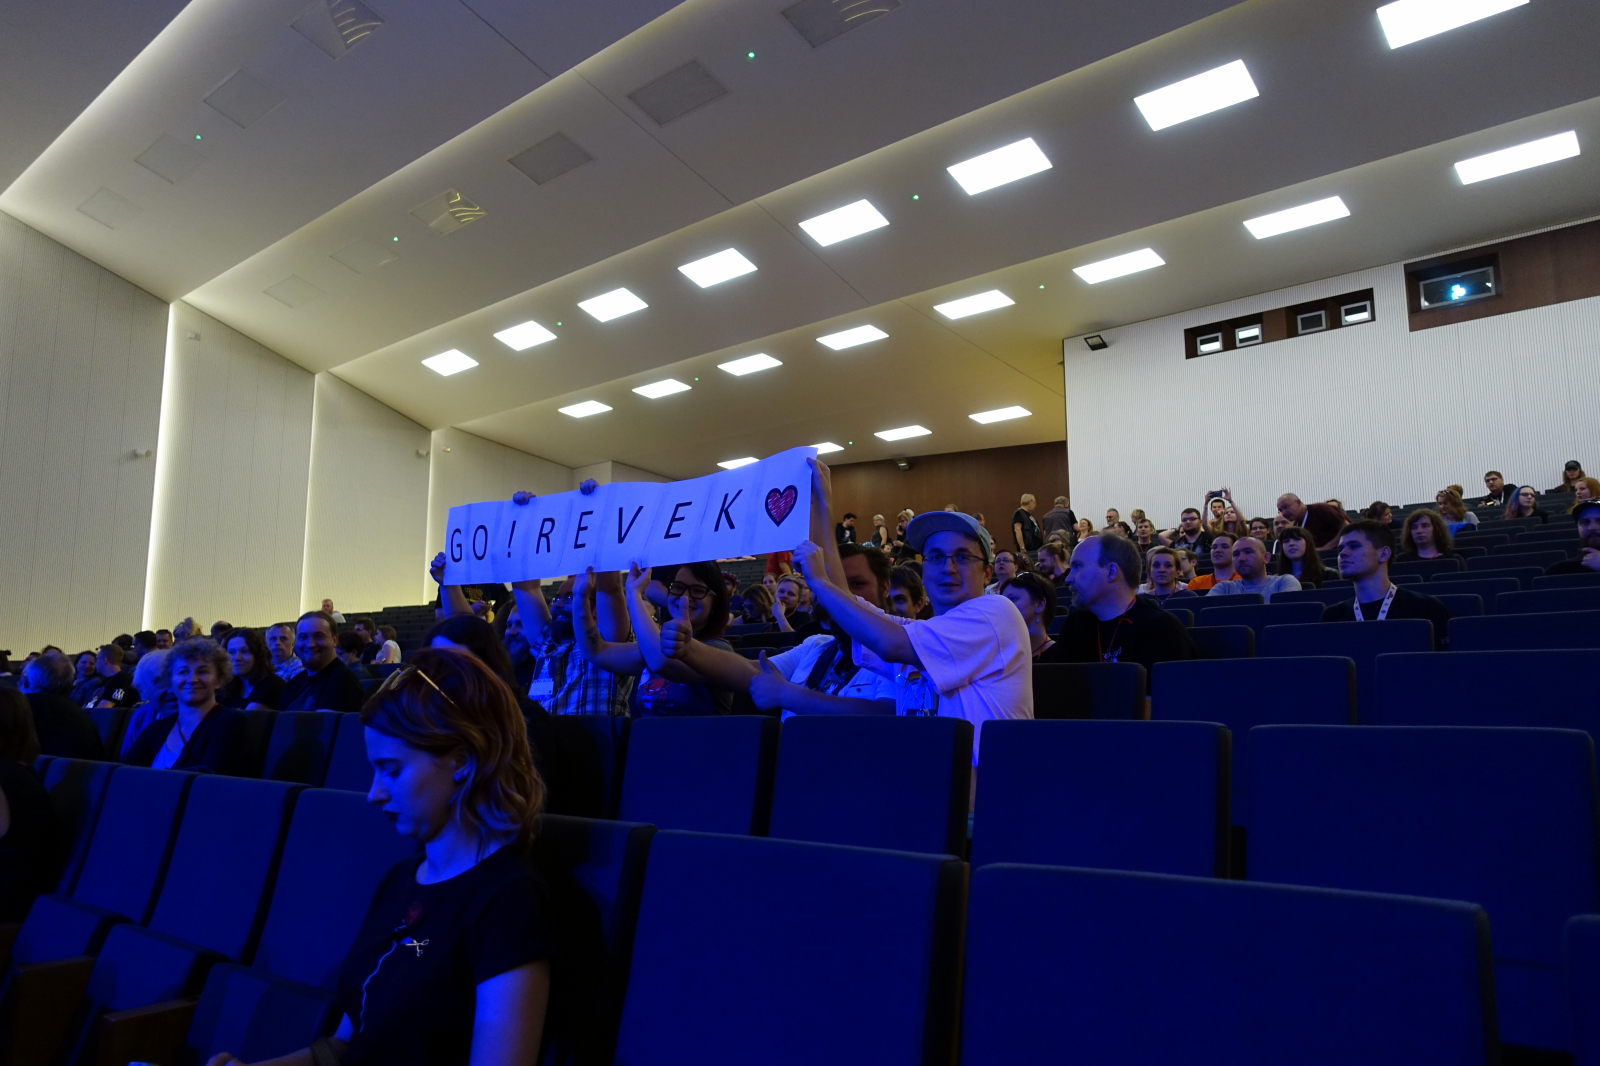 Audience in a big auditorium. Few people hold banner with inscription 'GO! REVEK'.